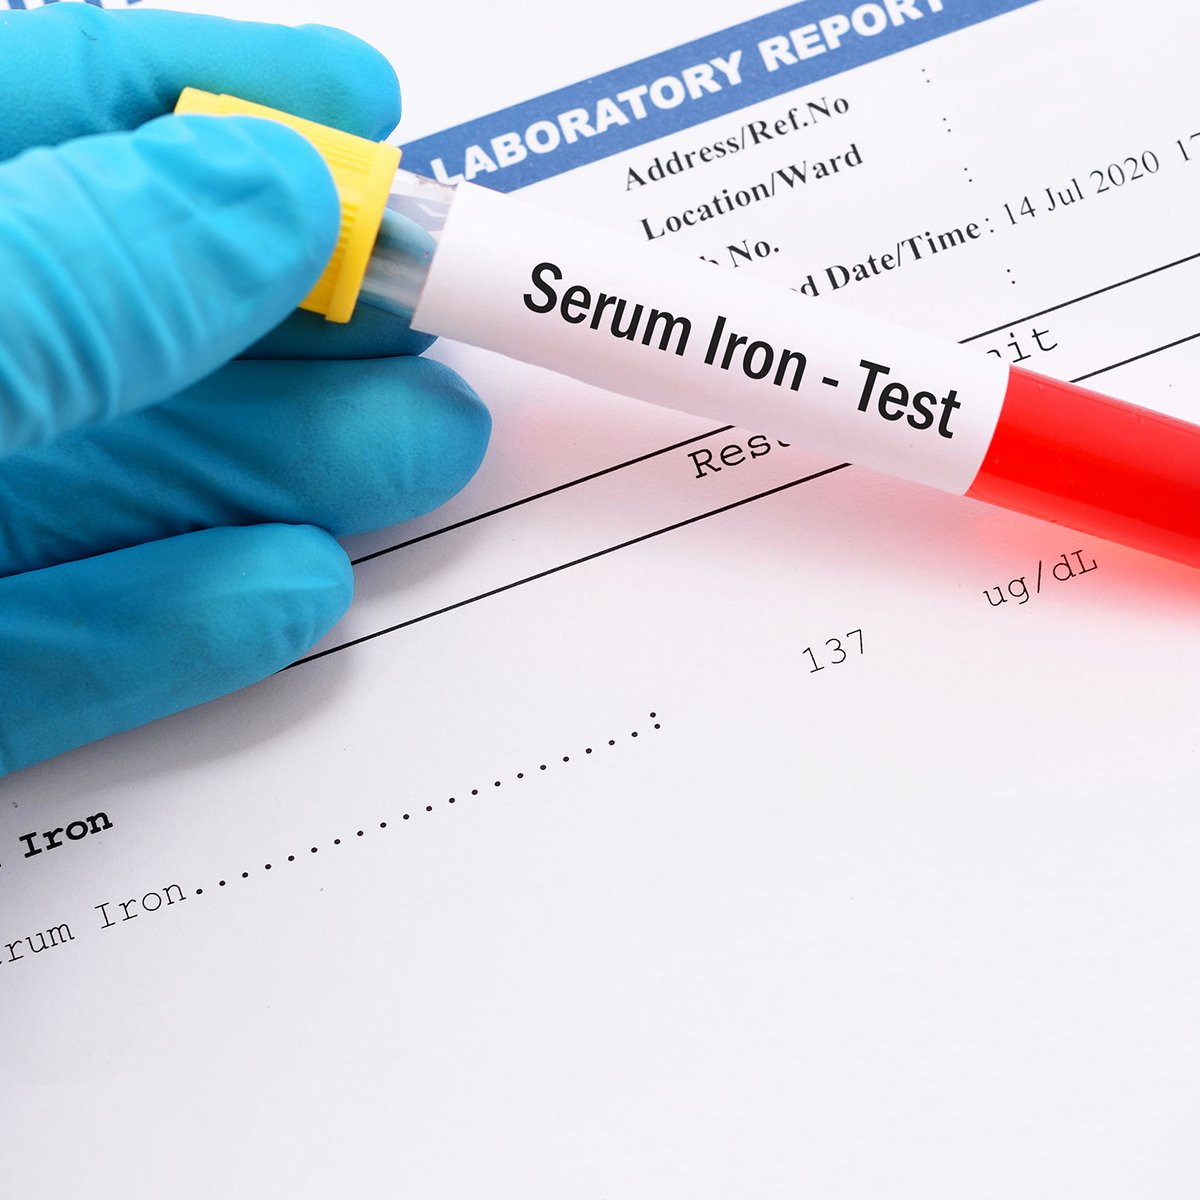 Iron Deficiency after Bariatric Surgery